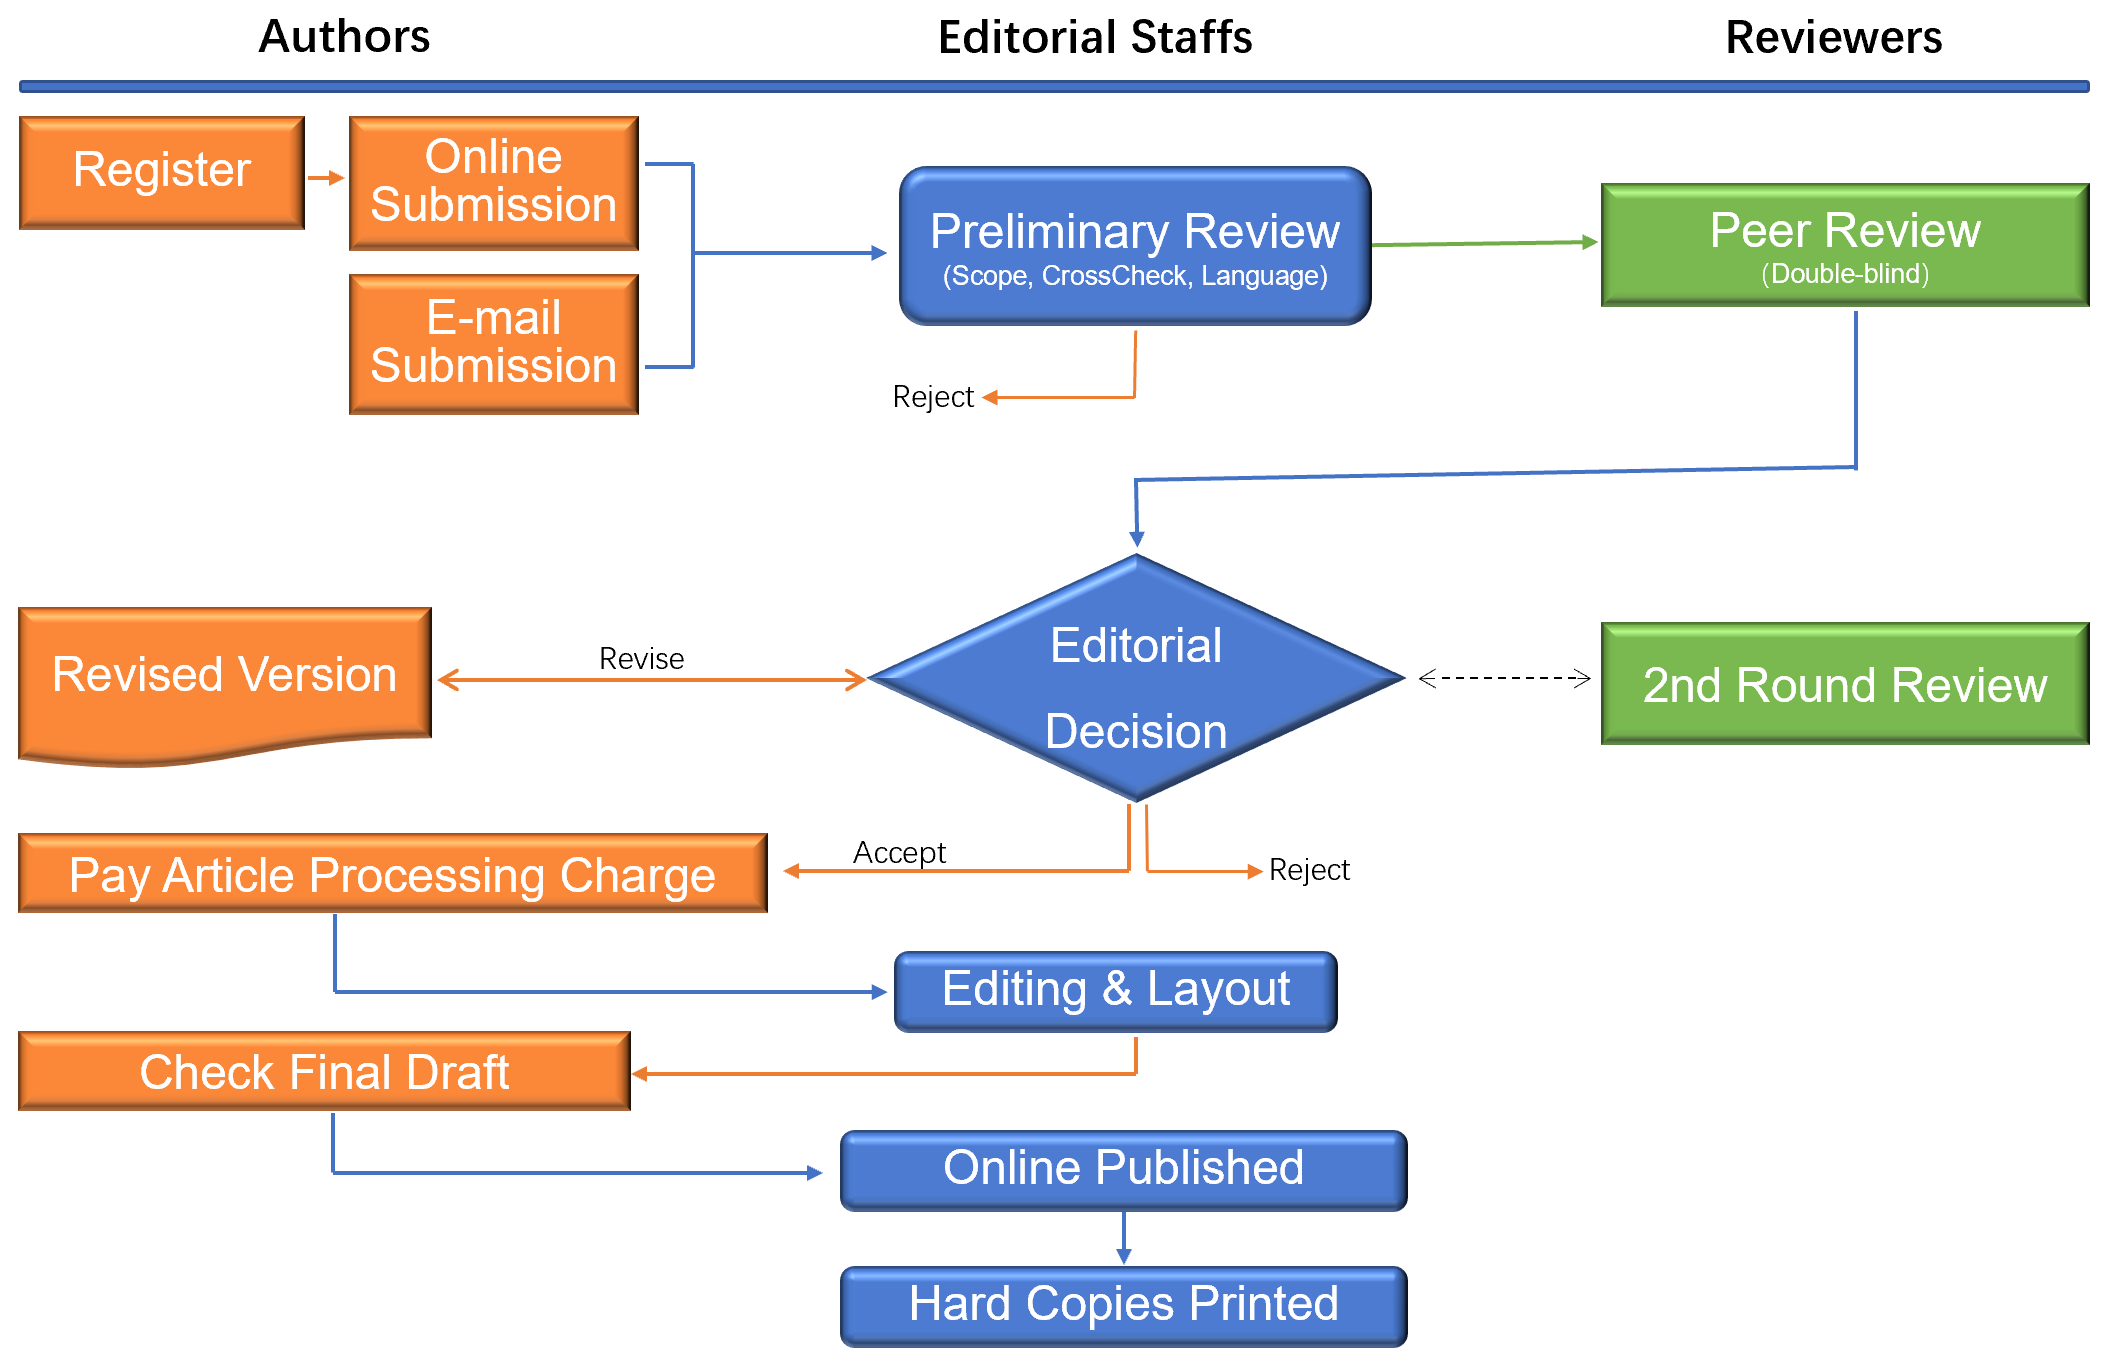 Workflow for the Article Publication